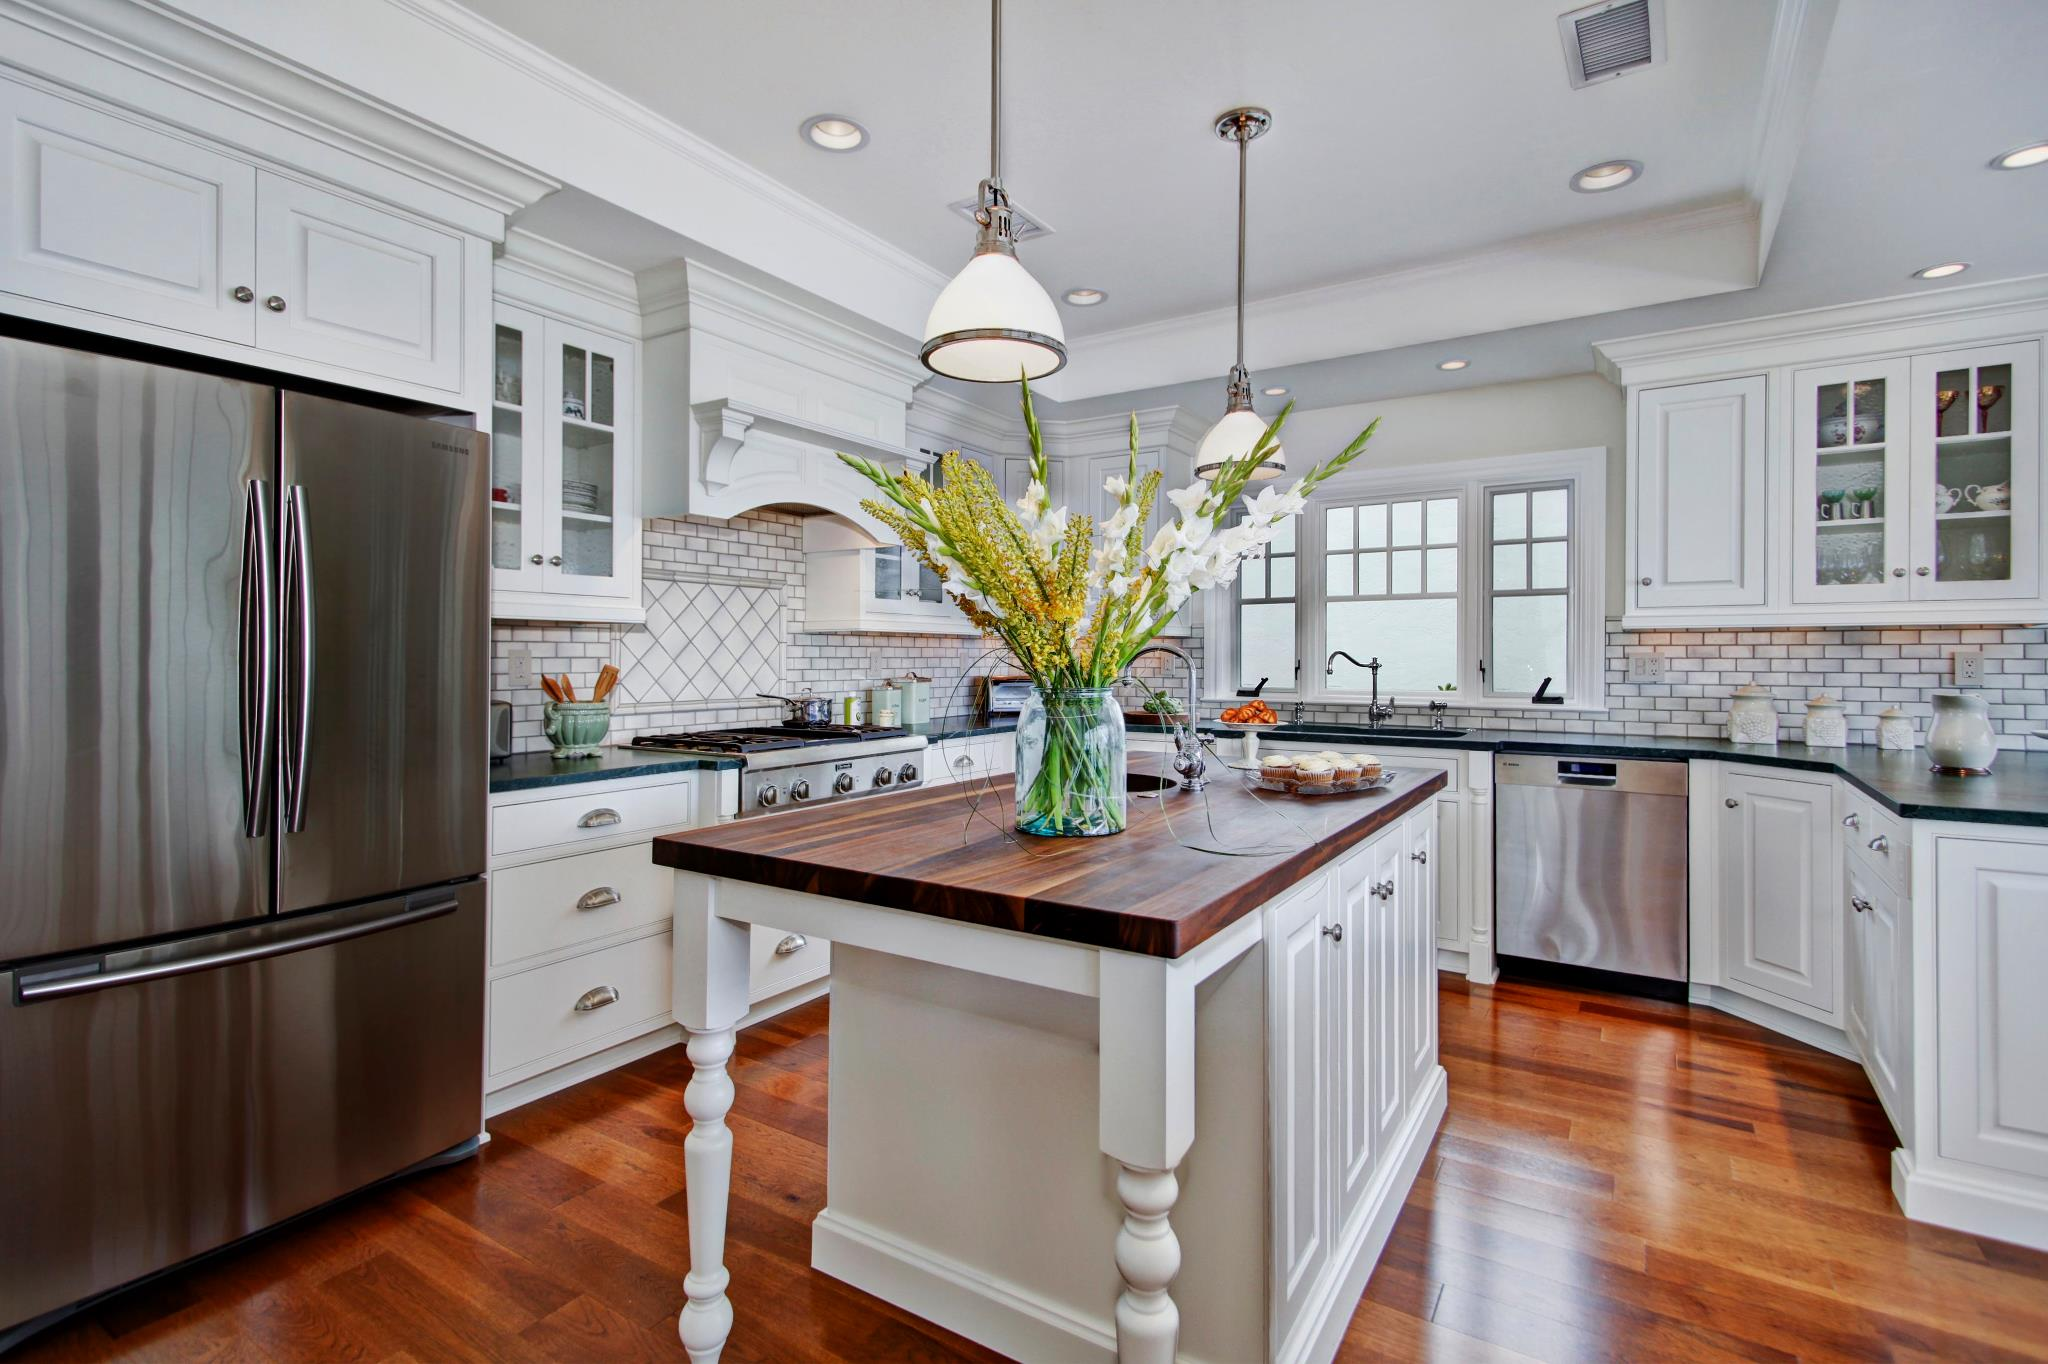 brakur colonial kitchen design Dover NH Kitchen Cabinets